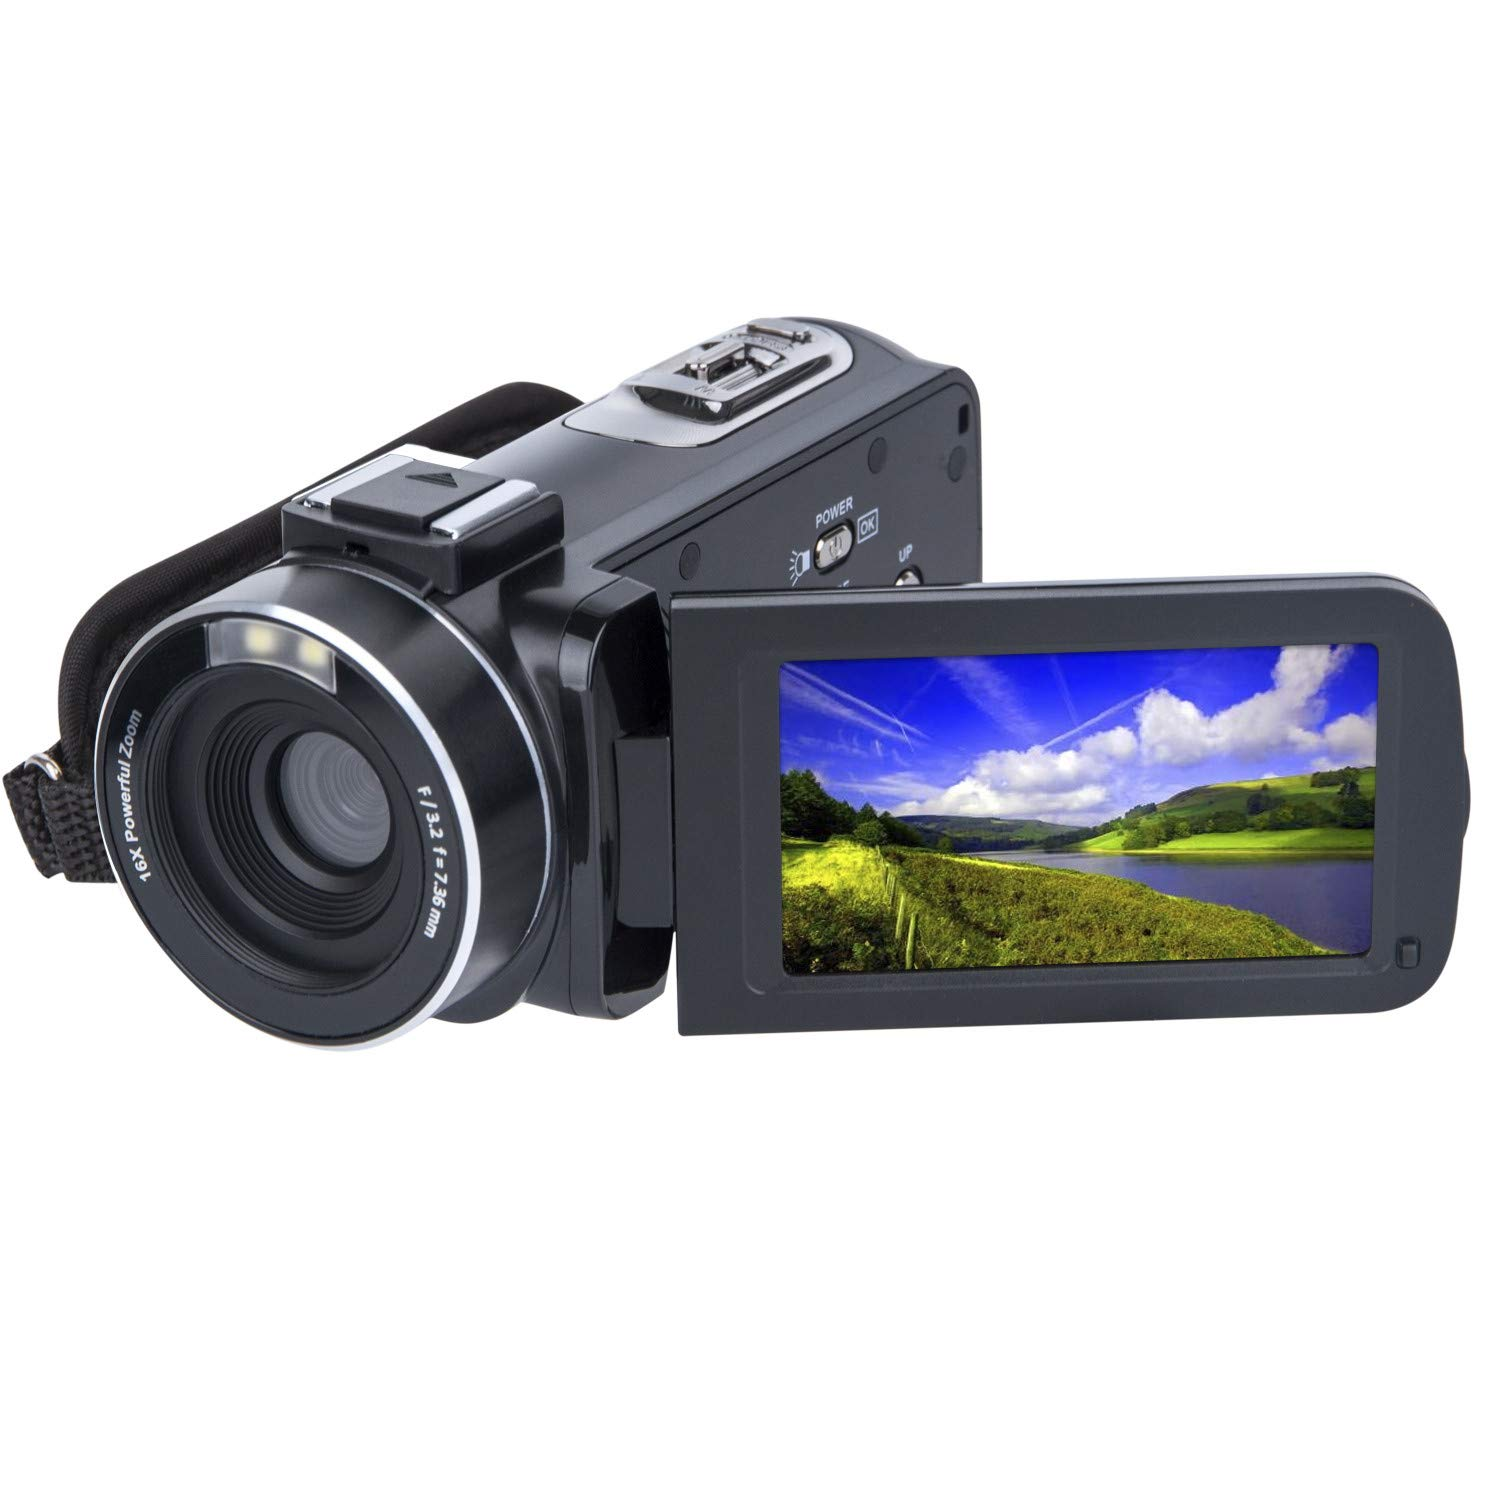 Video Camera Camcorder SOSUN HD 1080P 24.0MP 3.0 Inch LCD 270 Degrees Rotatable Screen 16X Digital Zoom Camera Recorder and 2 Batteries(301S-Plus), 301AM by SOSUN